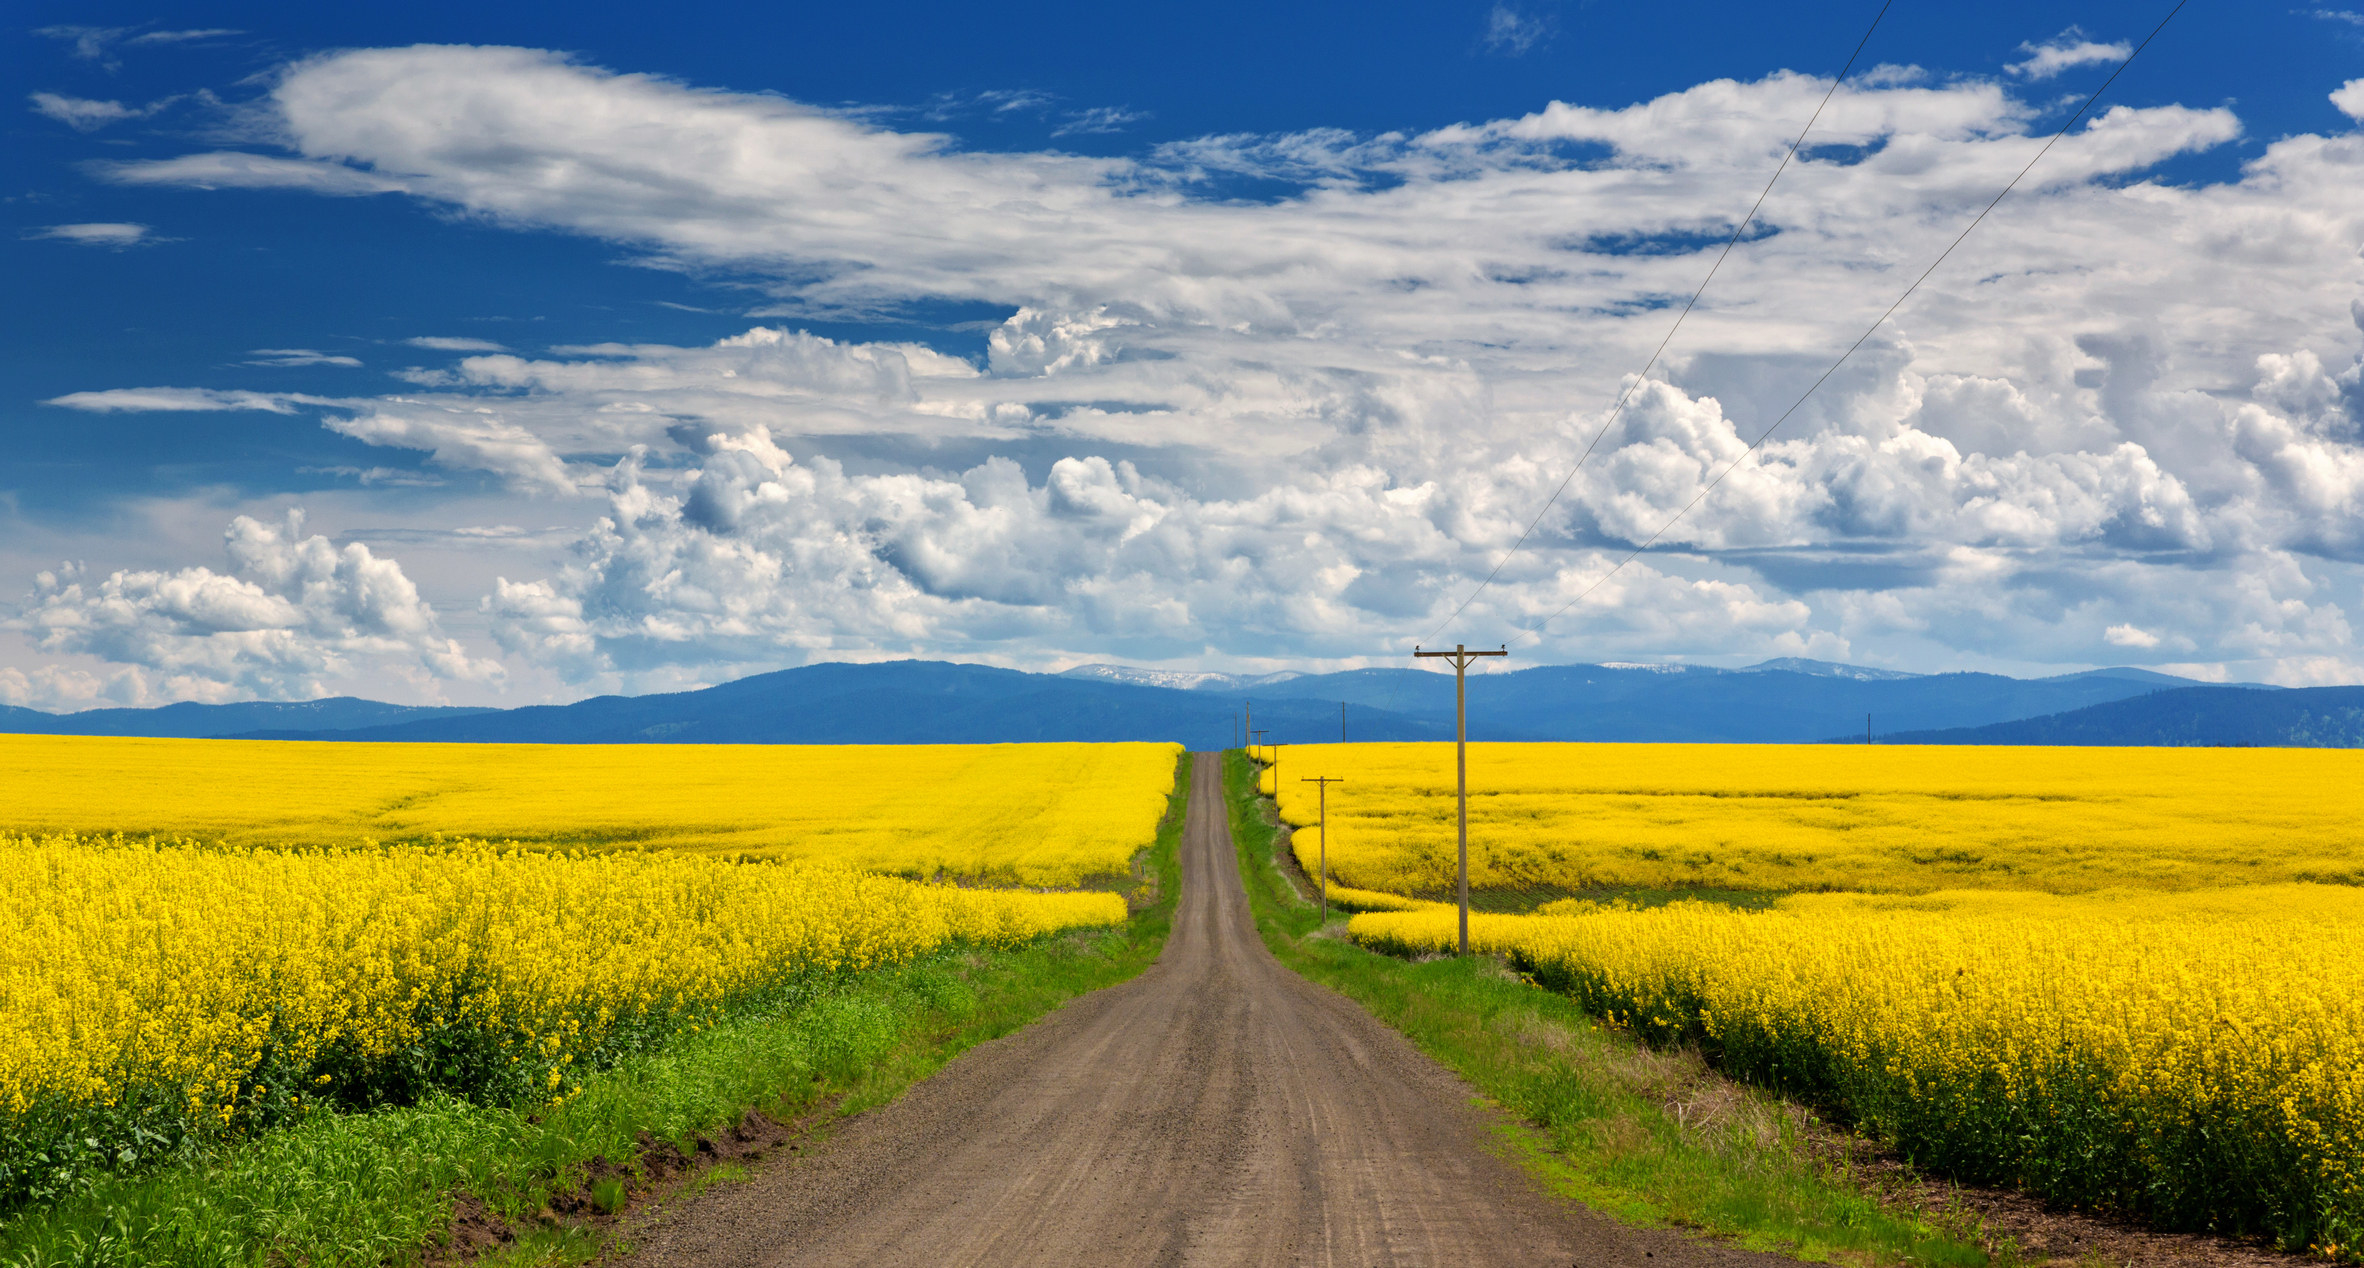 A dirt road extends towards mountains under a cloudy blue sky surrounded by a field of bright mustard flowers